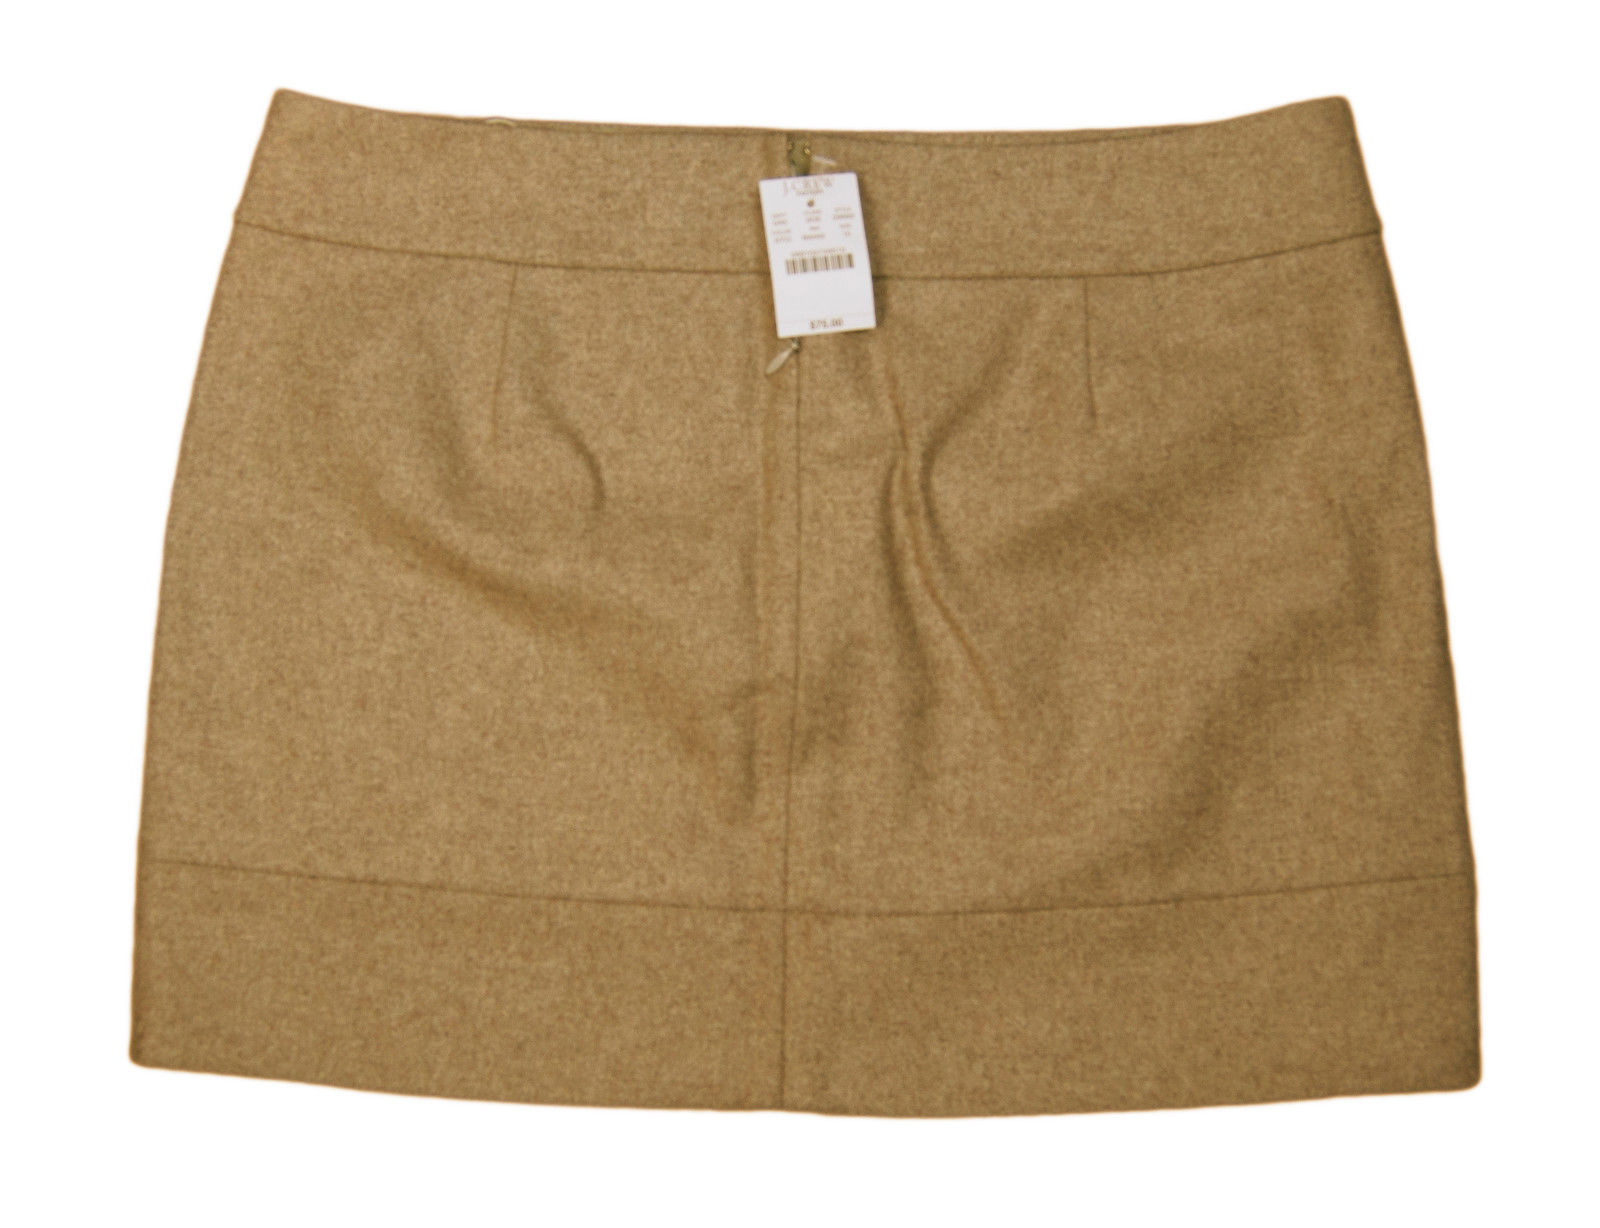 838b685548 J CREW Camel Brown Wool Blend Rear Zip A and 38 similar items